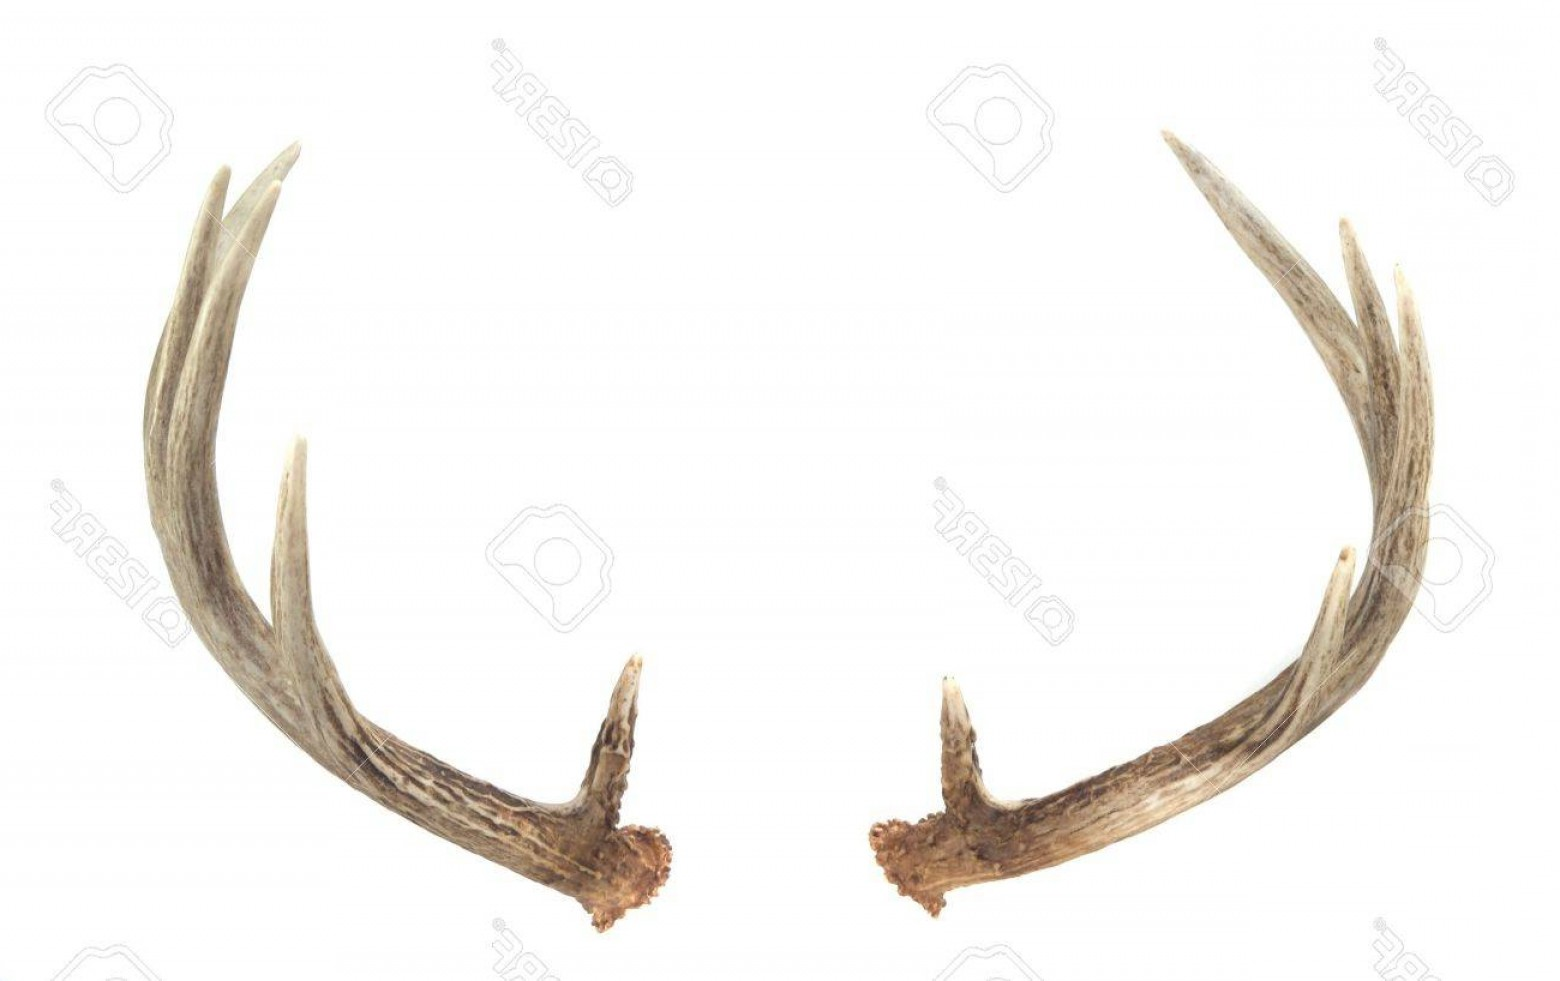 1560x981 Photorear View Of Whitetail Deer Antlers Isolated On White